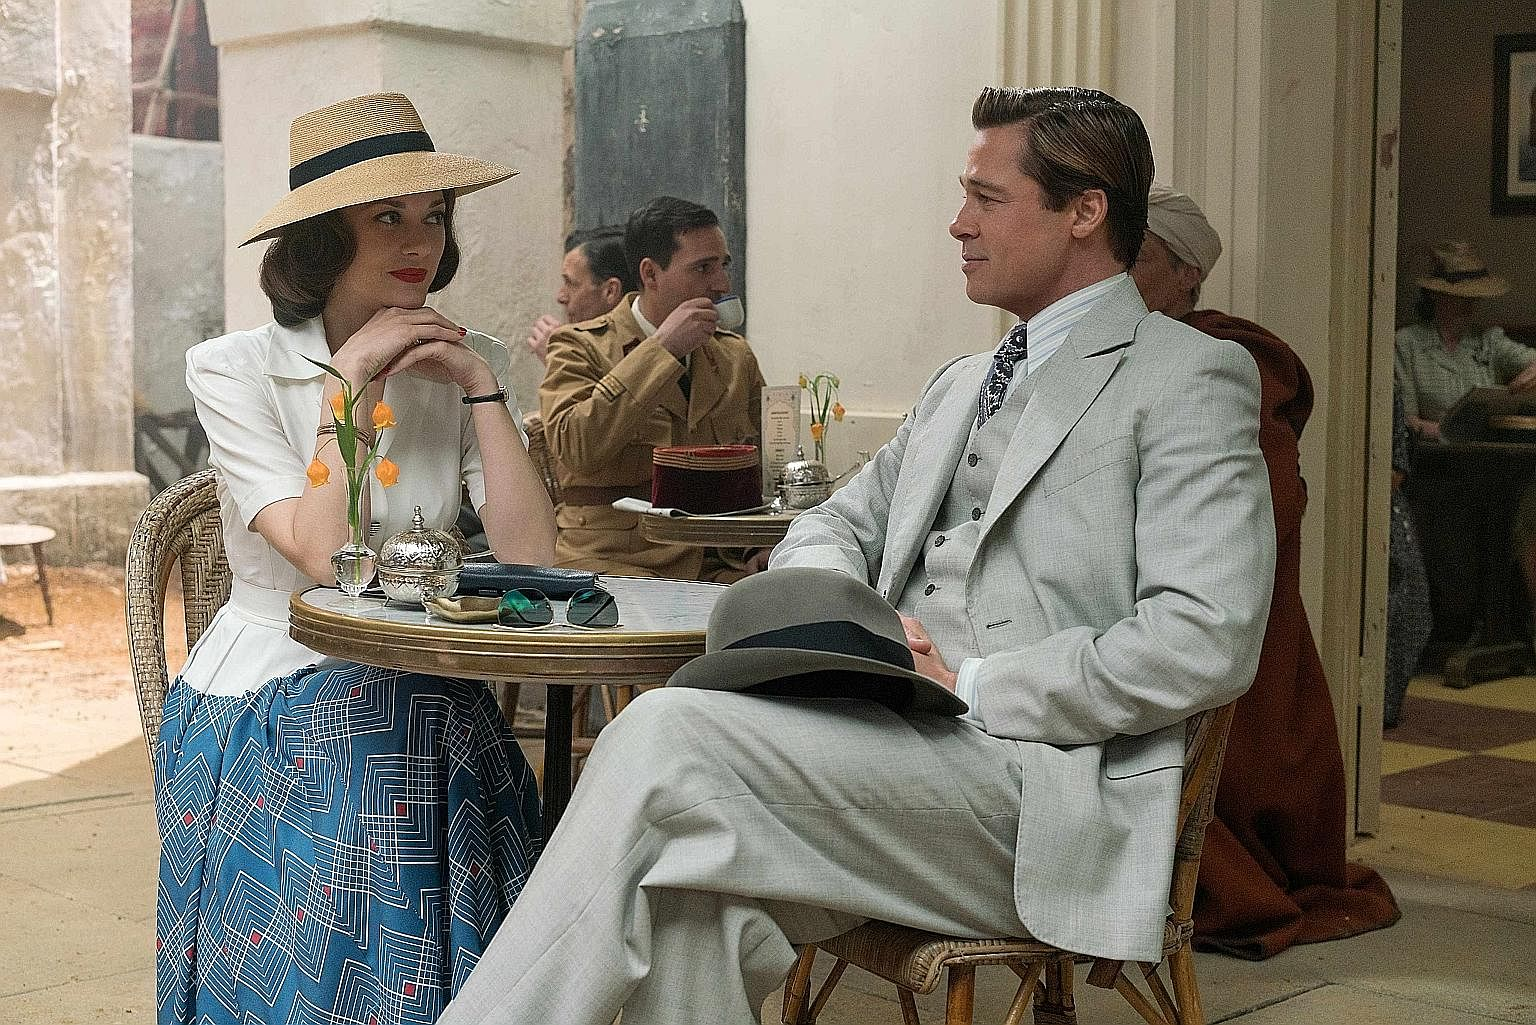 Gong Yoo in Age Of Shadows; Marion Cotillard and Brad Pitt in Allied (above); and Michael Pena, Kate Winslet and Will Smith in Collateral Beauty.